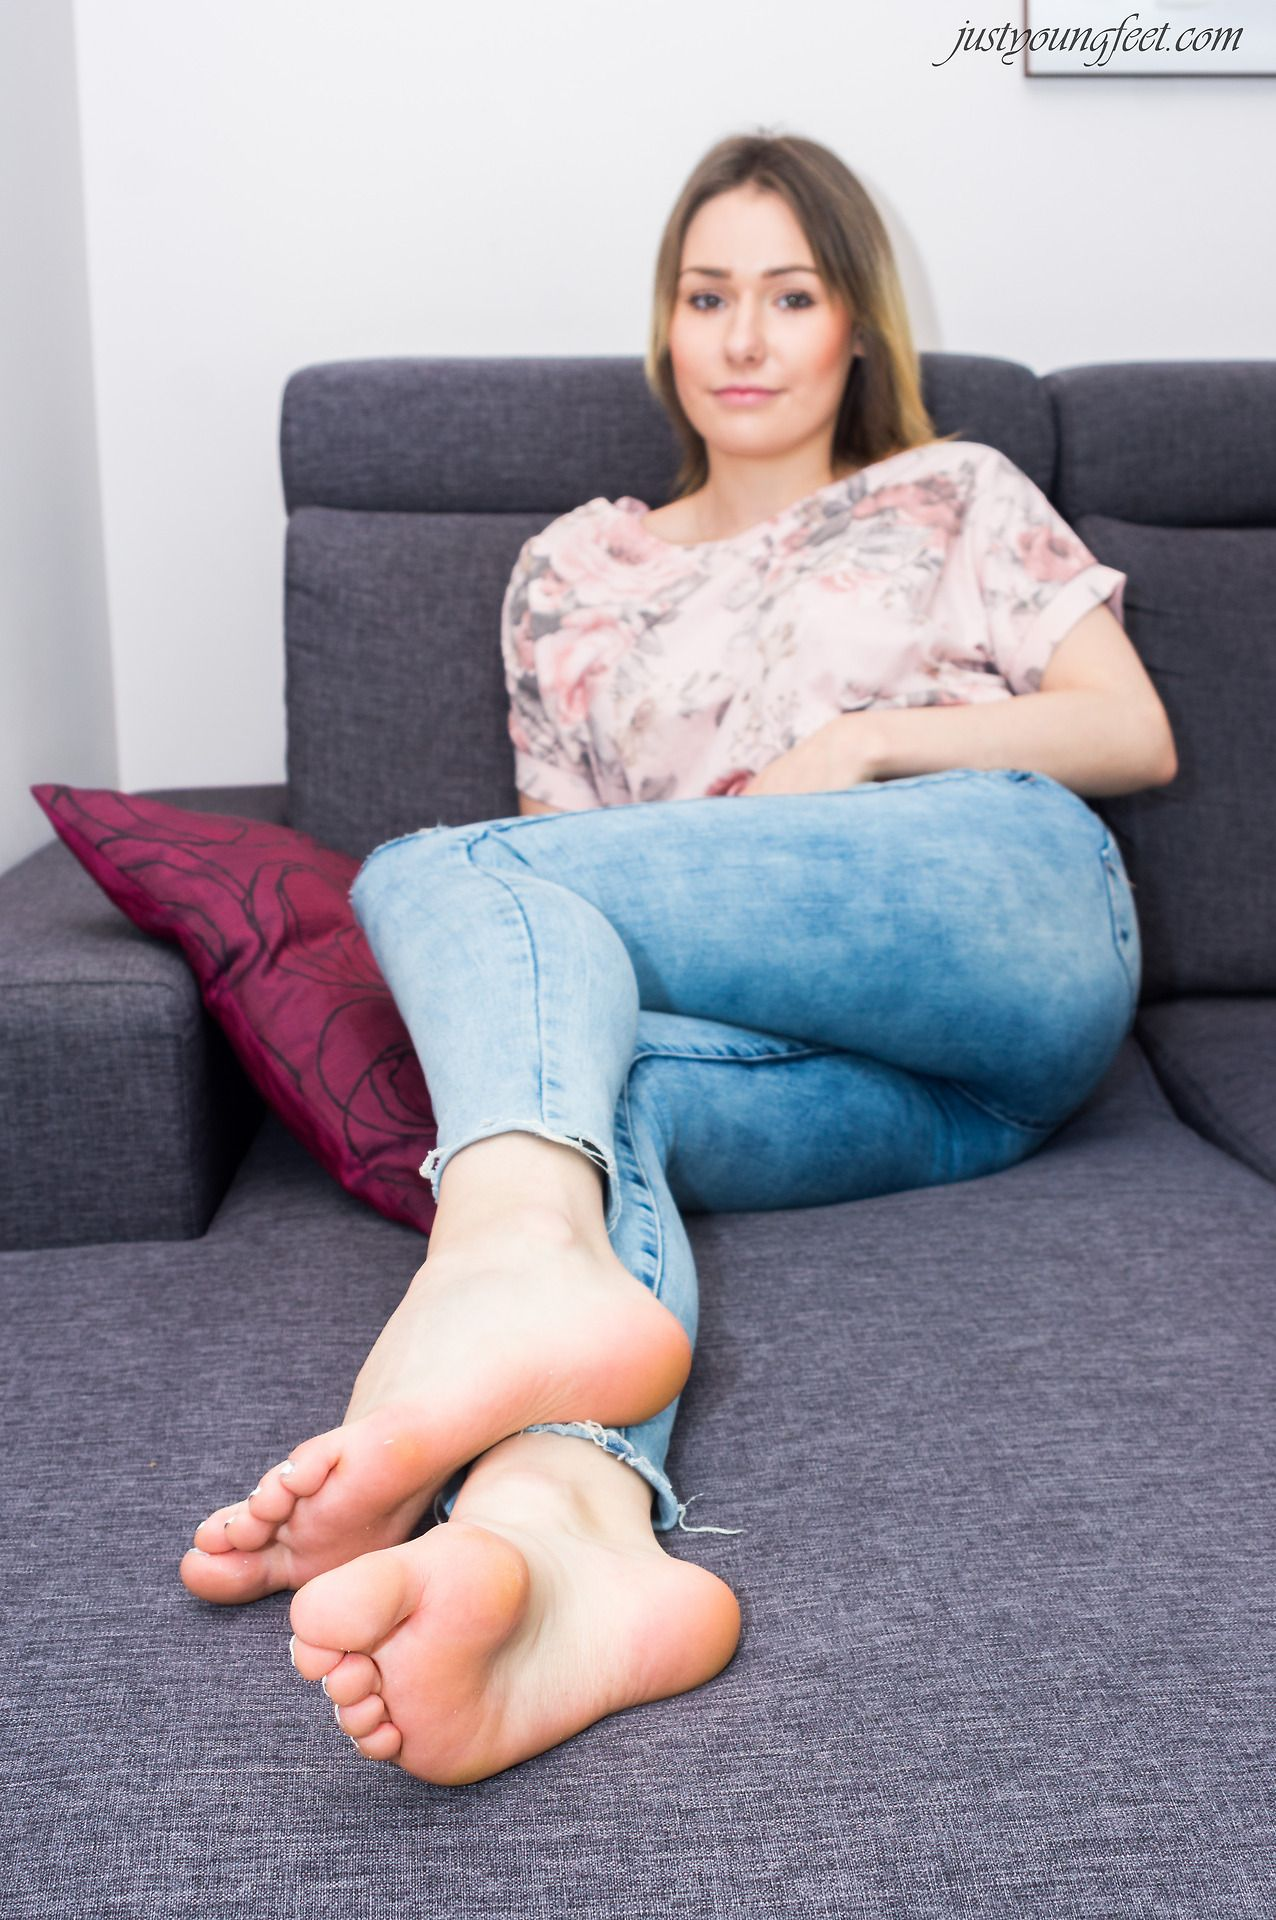 Sexy bare feet and legs